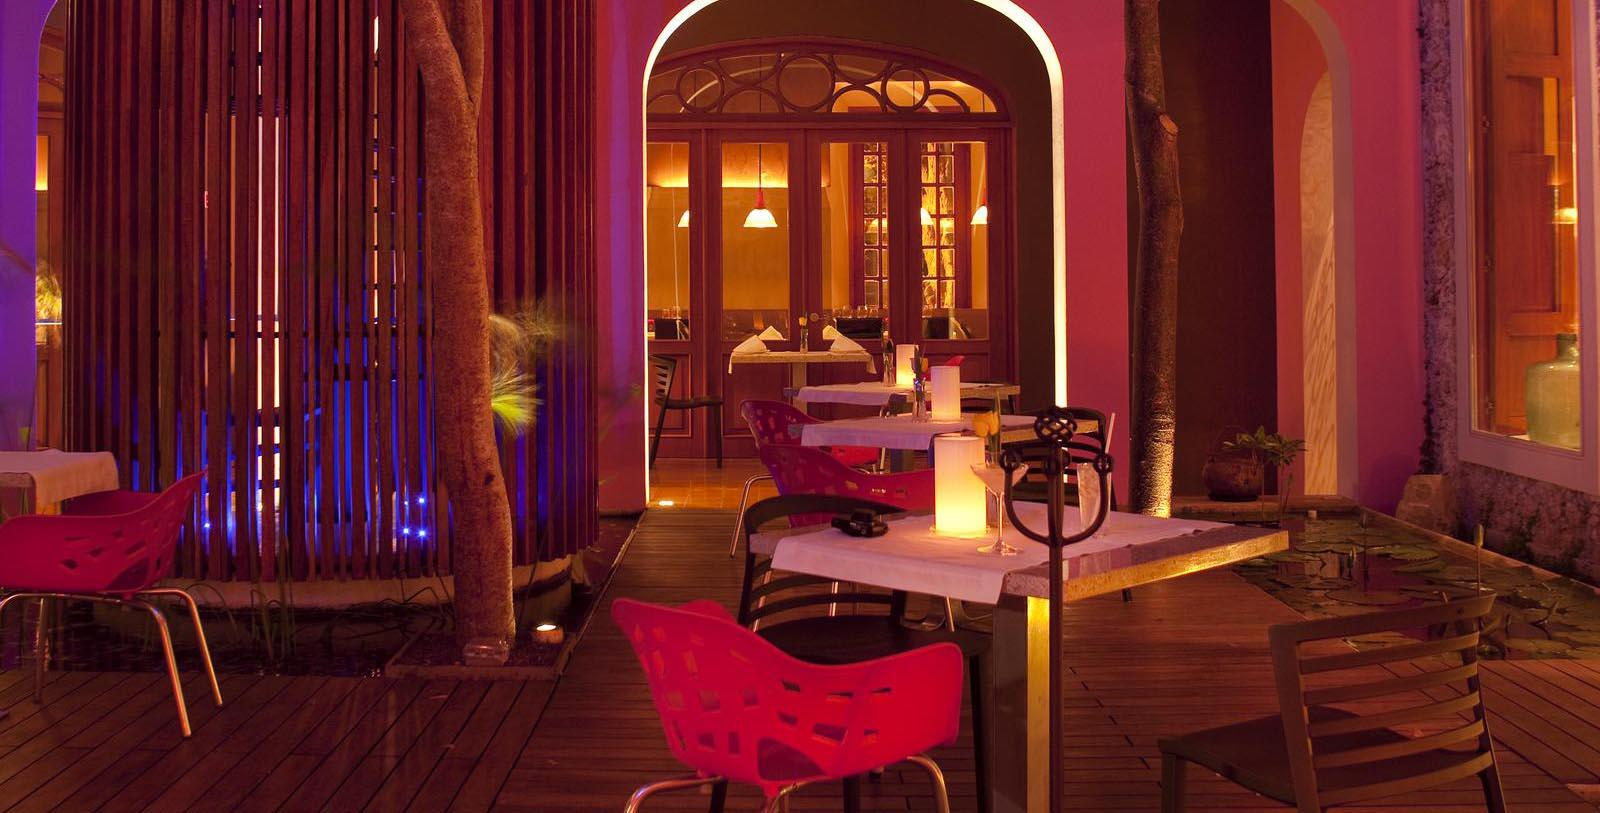 Image of Moon Lounge at Rosas & Xocolate Boutique Hotel, 1909, Member of Historic Hotels Worldwide, in Merida, Yucatan, Mexico, Experience